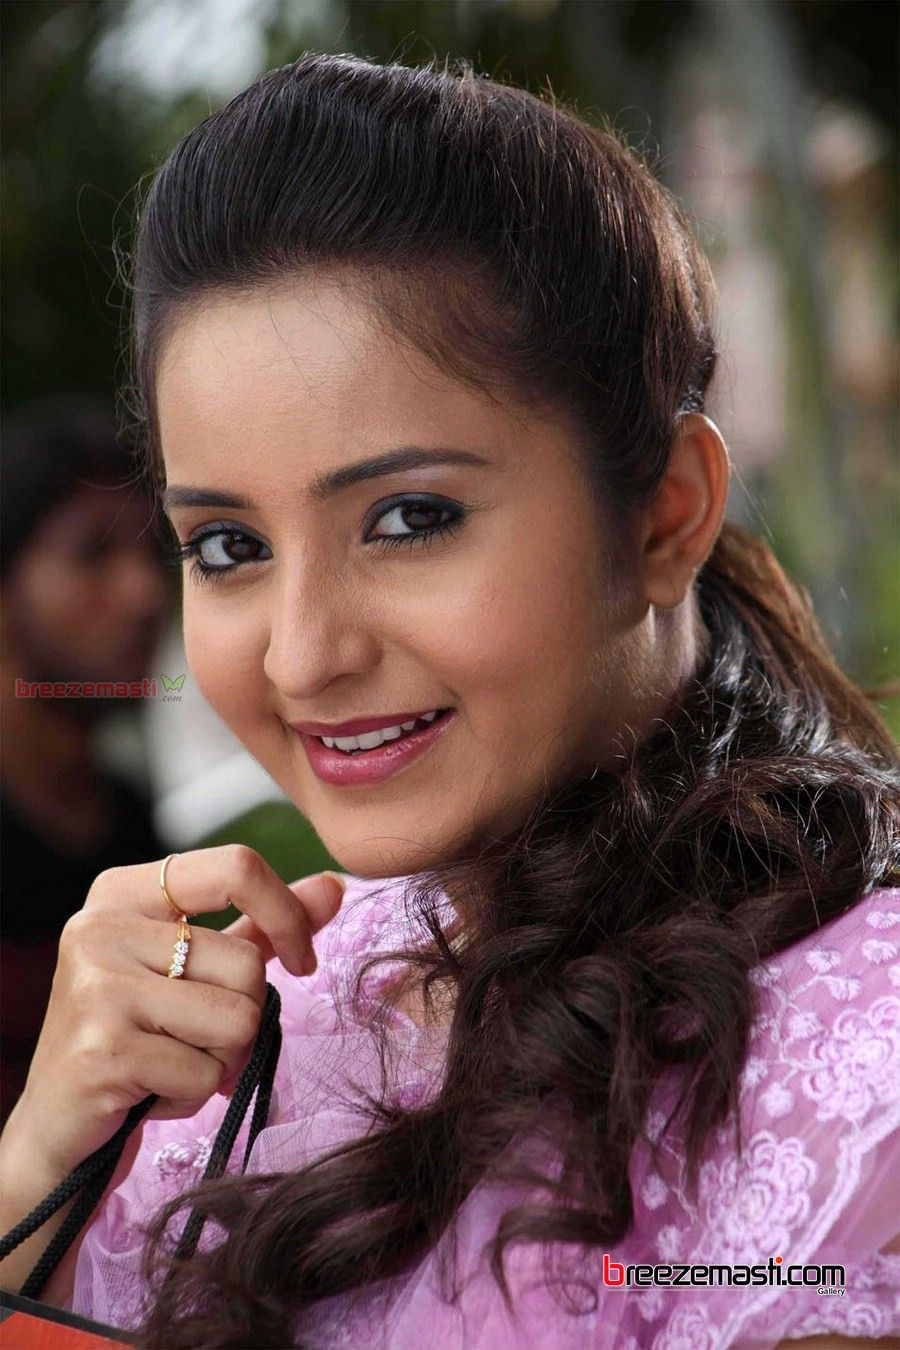 bhama hd photosbhama acters, bhama roget, bahama mama, bhama facebook, bhama actress, bhama photos, bhama navel, bhama hot photos, bhama hot pics, bhama feet, bhama shah, bhama age, bhama marriage, bhama hot videos, bhama cerveja, bhama hot, bhama couture, bhama kalapam, bhama hd photos, bhama bar